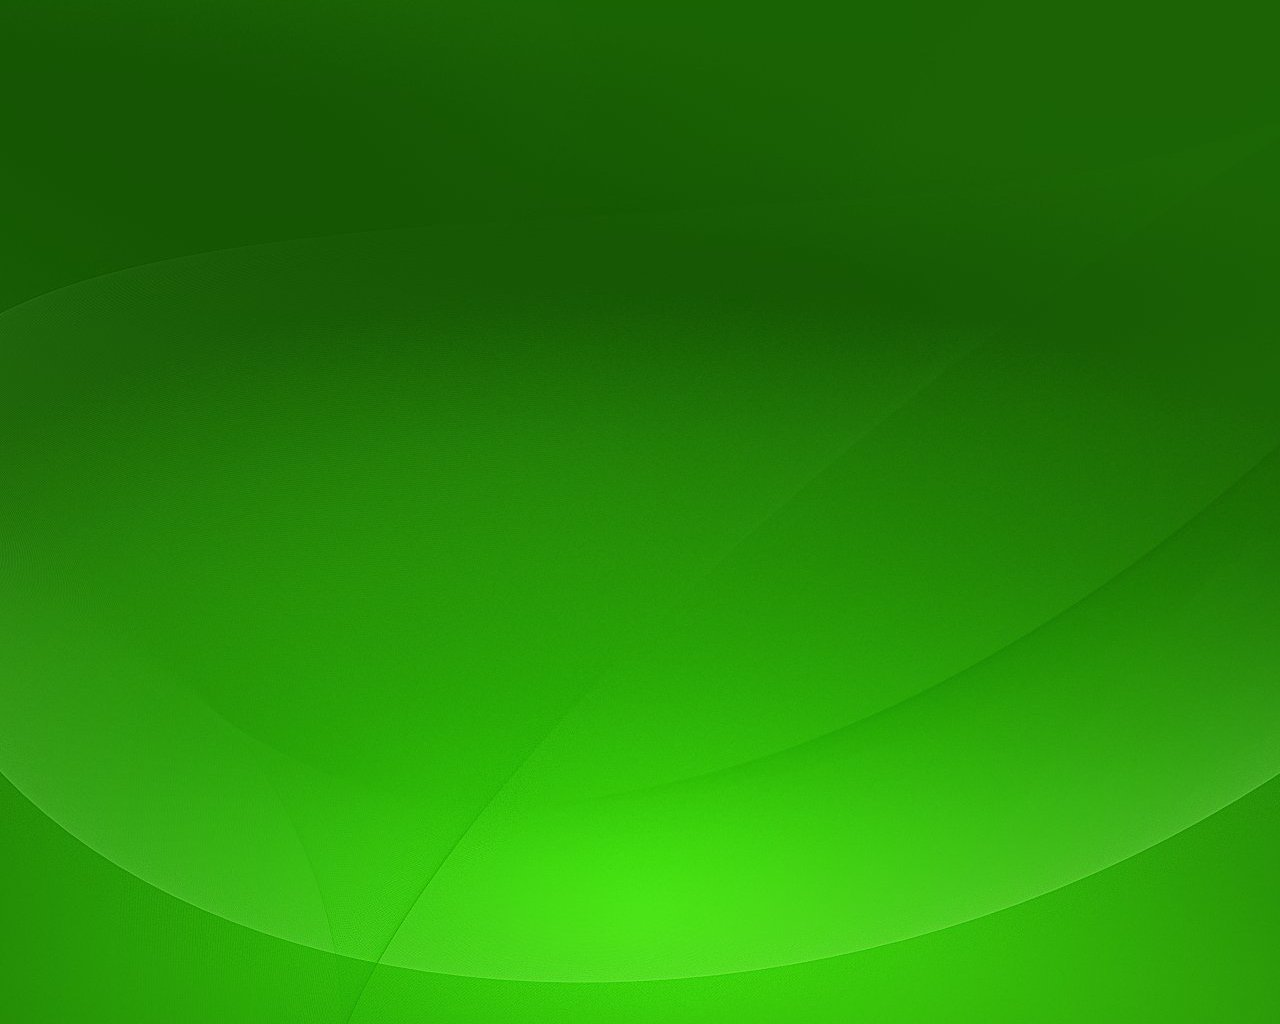 Simple Green Wallpaper